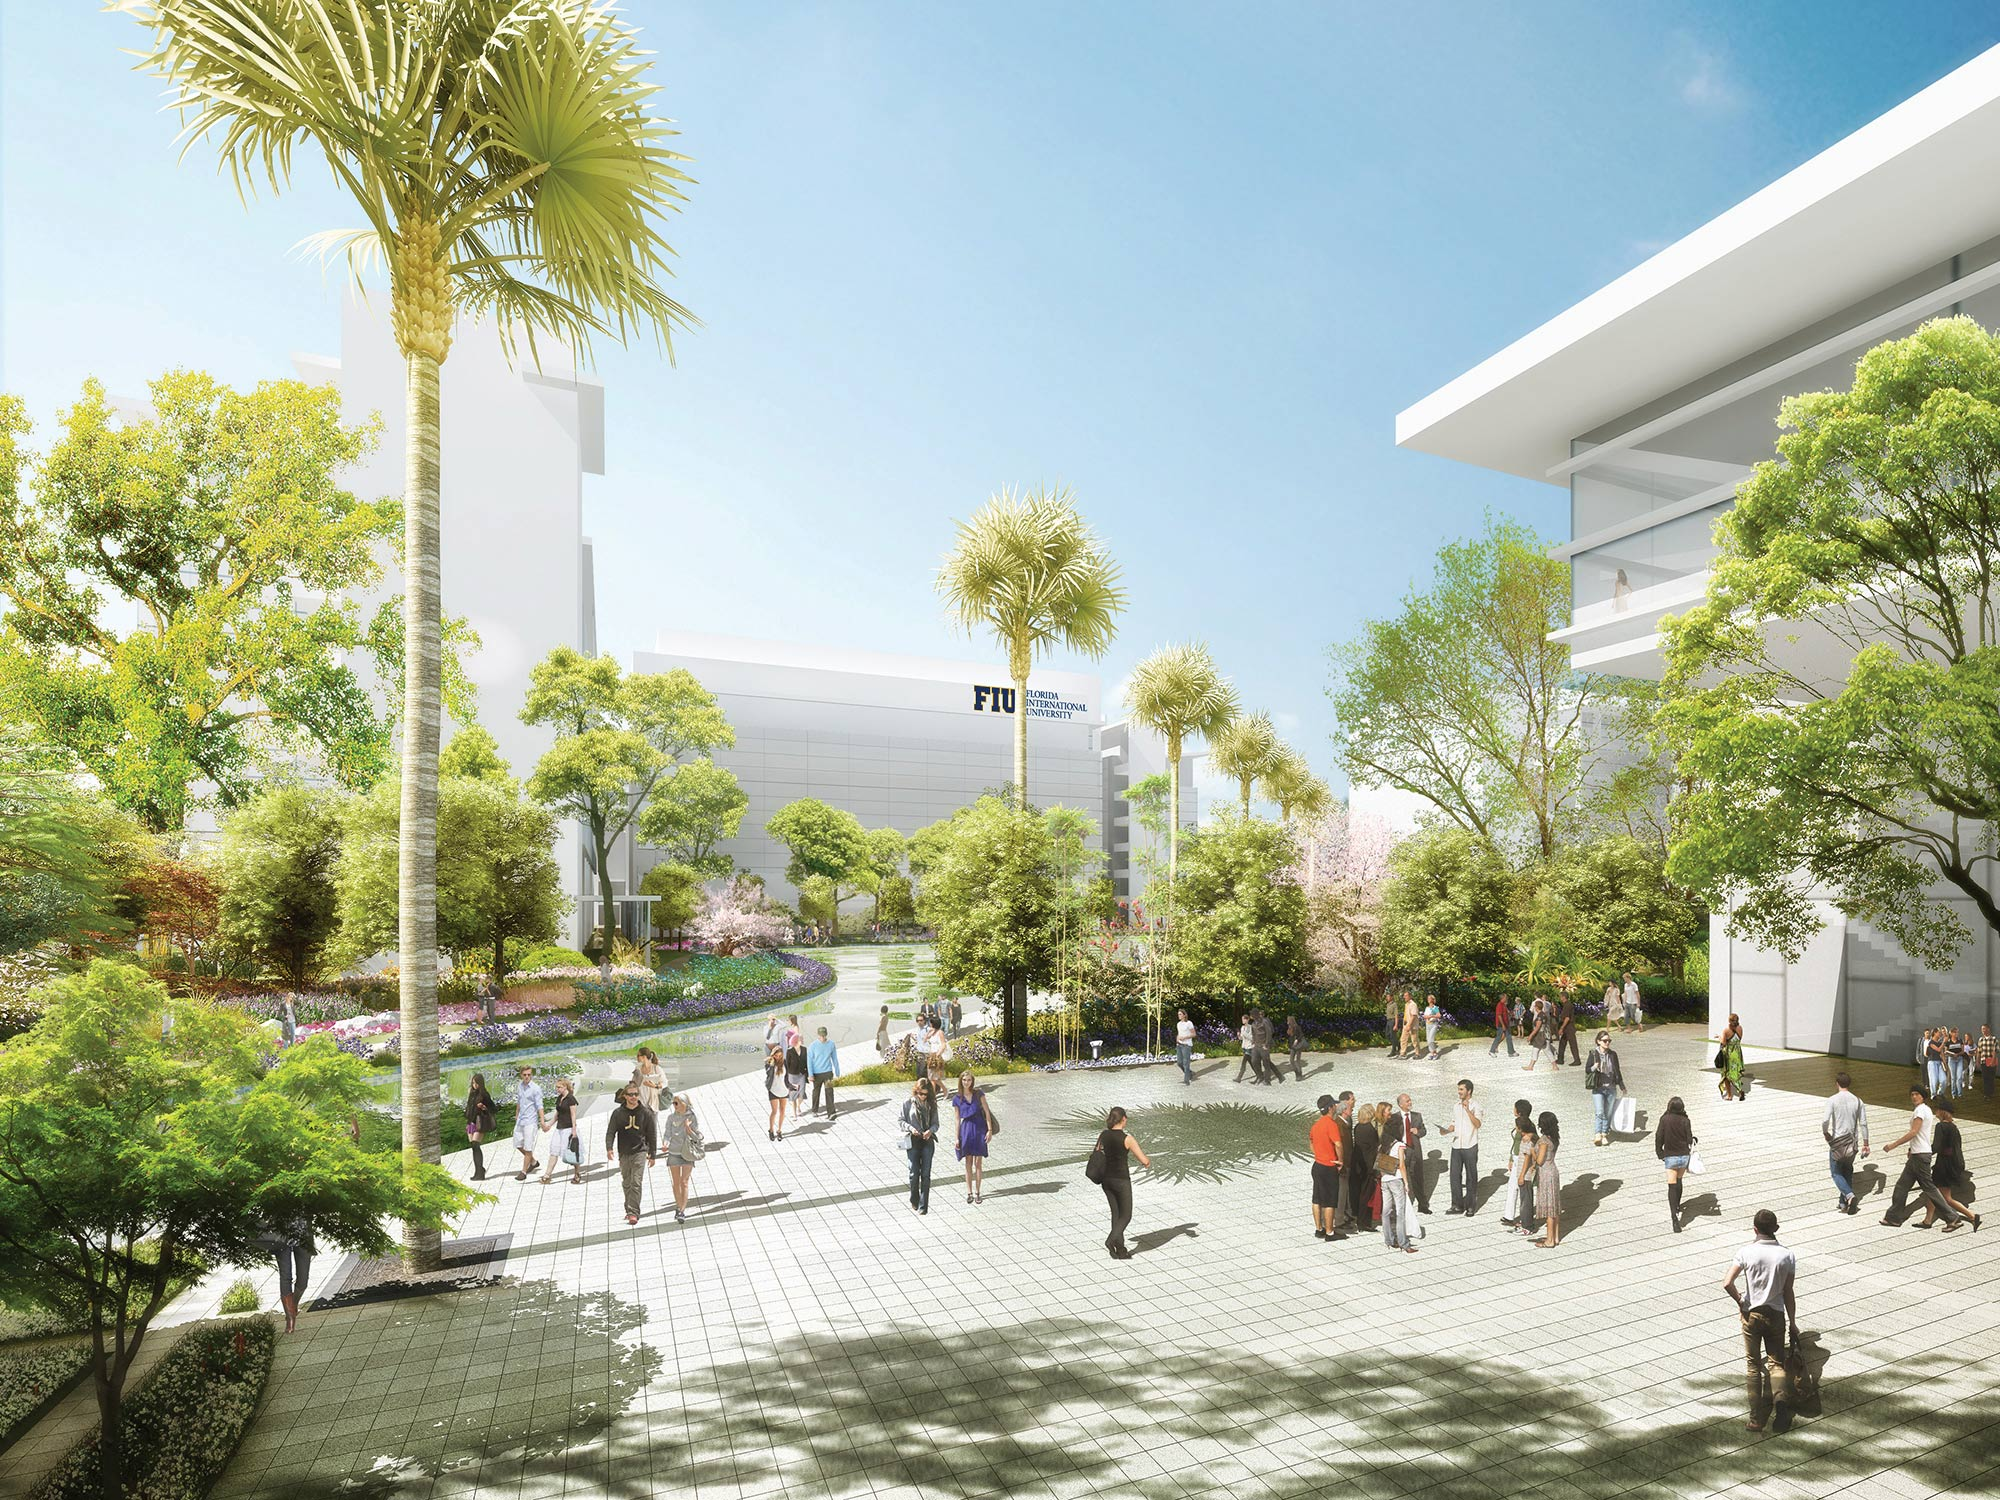 FIU expansion: what are you looking forward to?